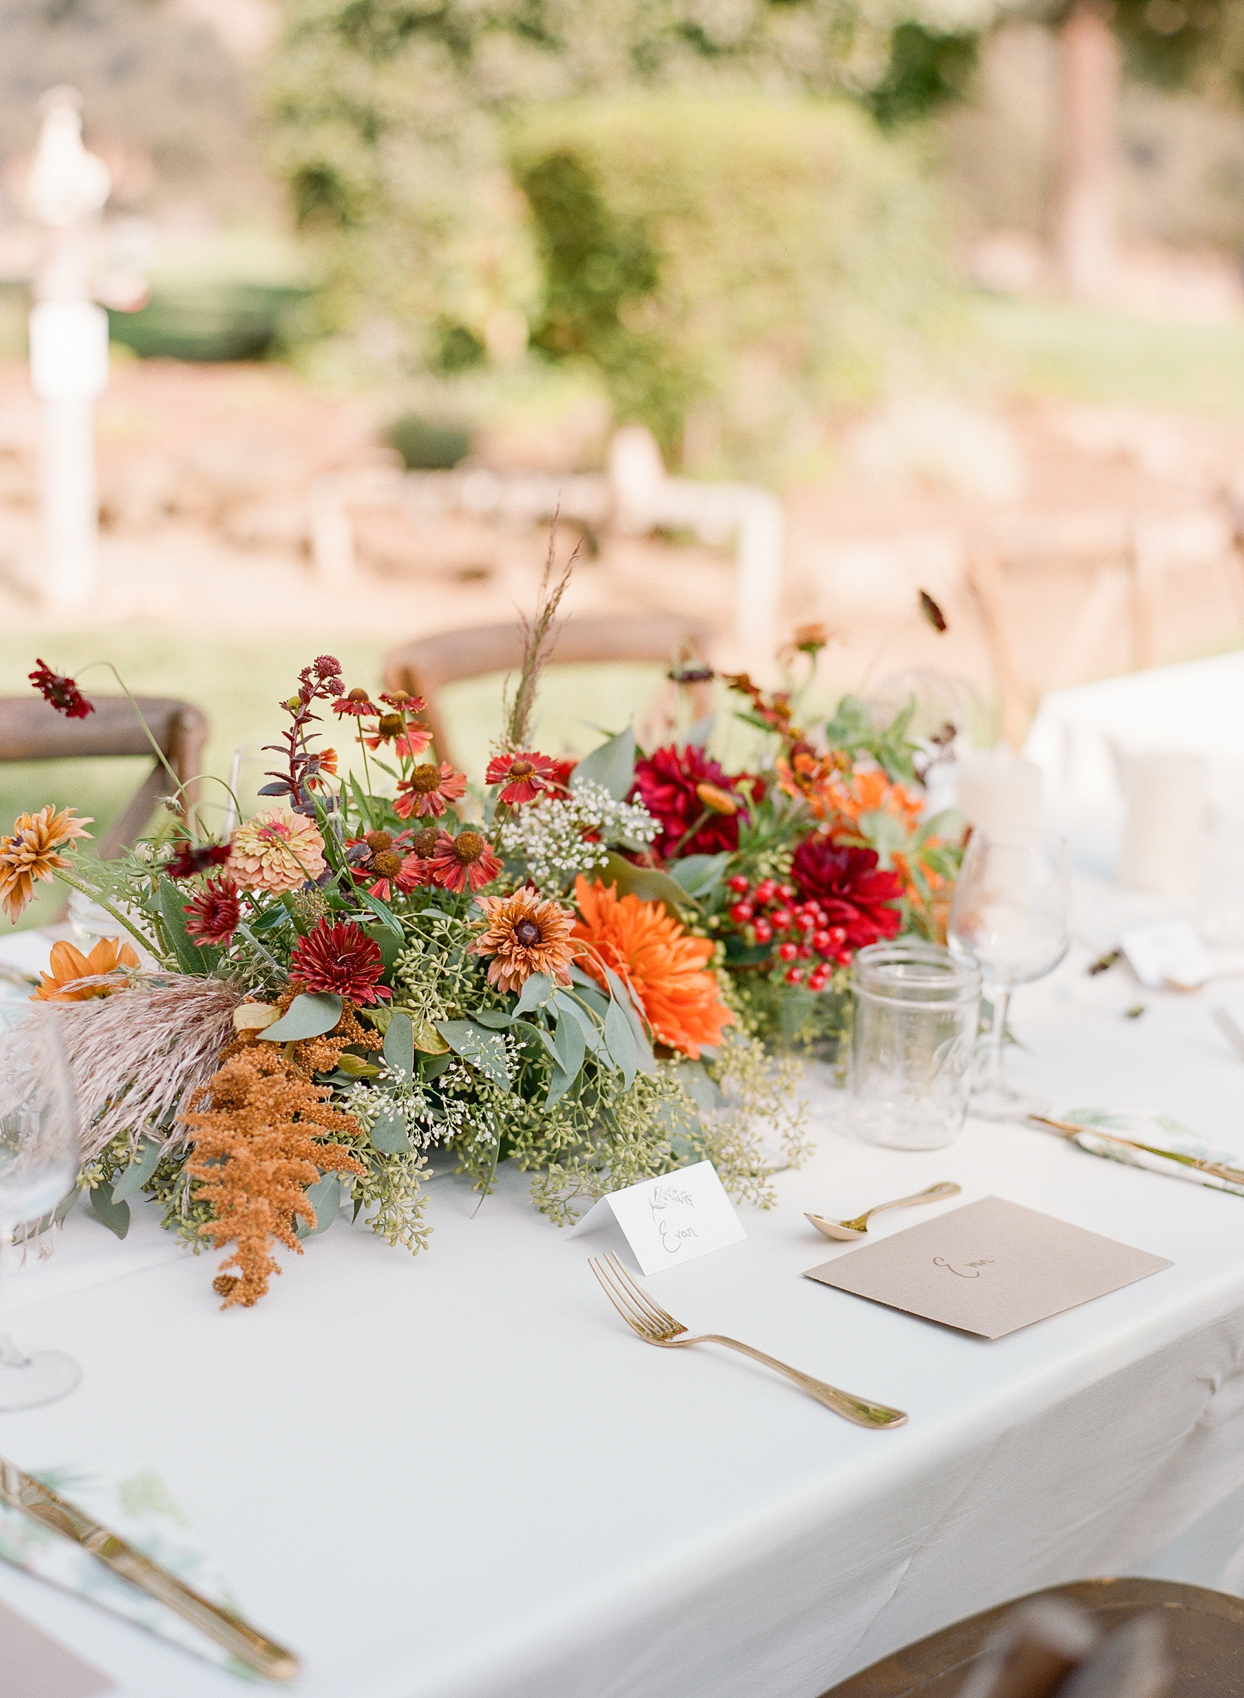 table centerpieces with orange and red flowers